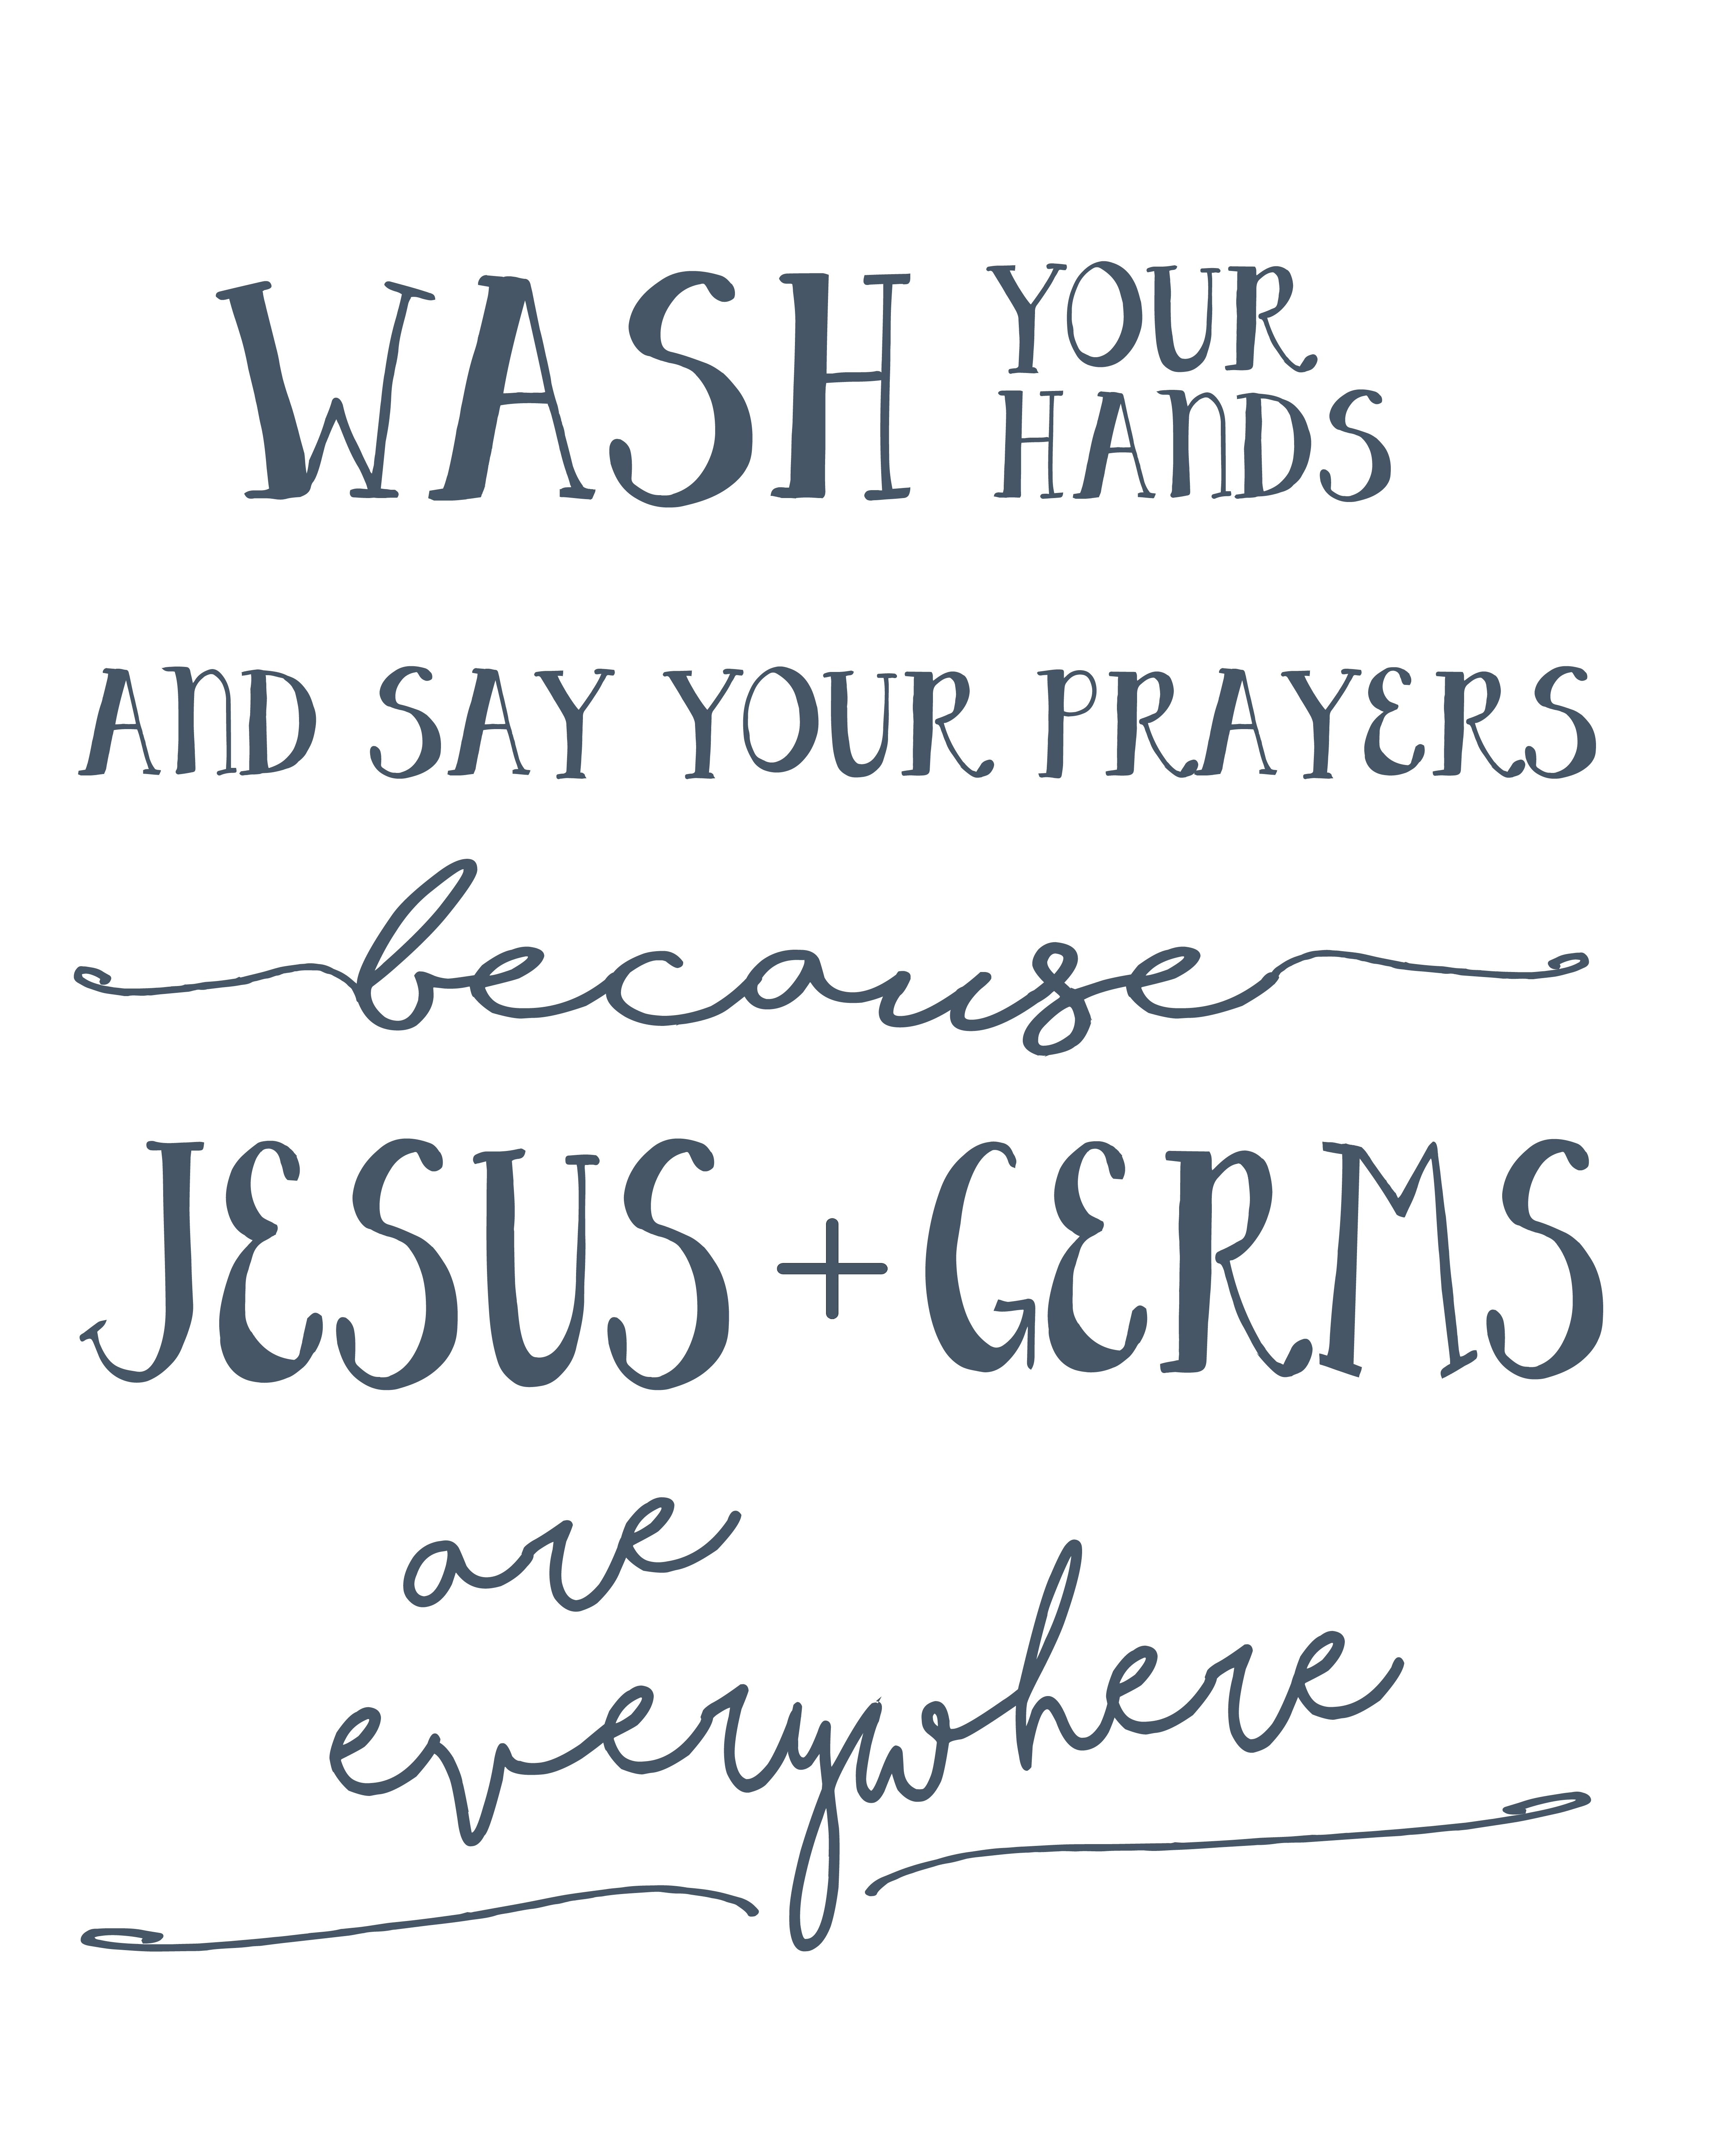 Wash Your Hands And Say Your Prayers Free Printable | Arts & Crafts - Wash Your Hands And Say Your Prayers Free Printable